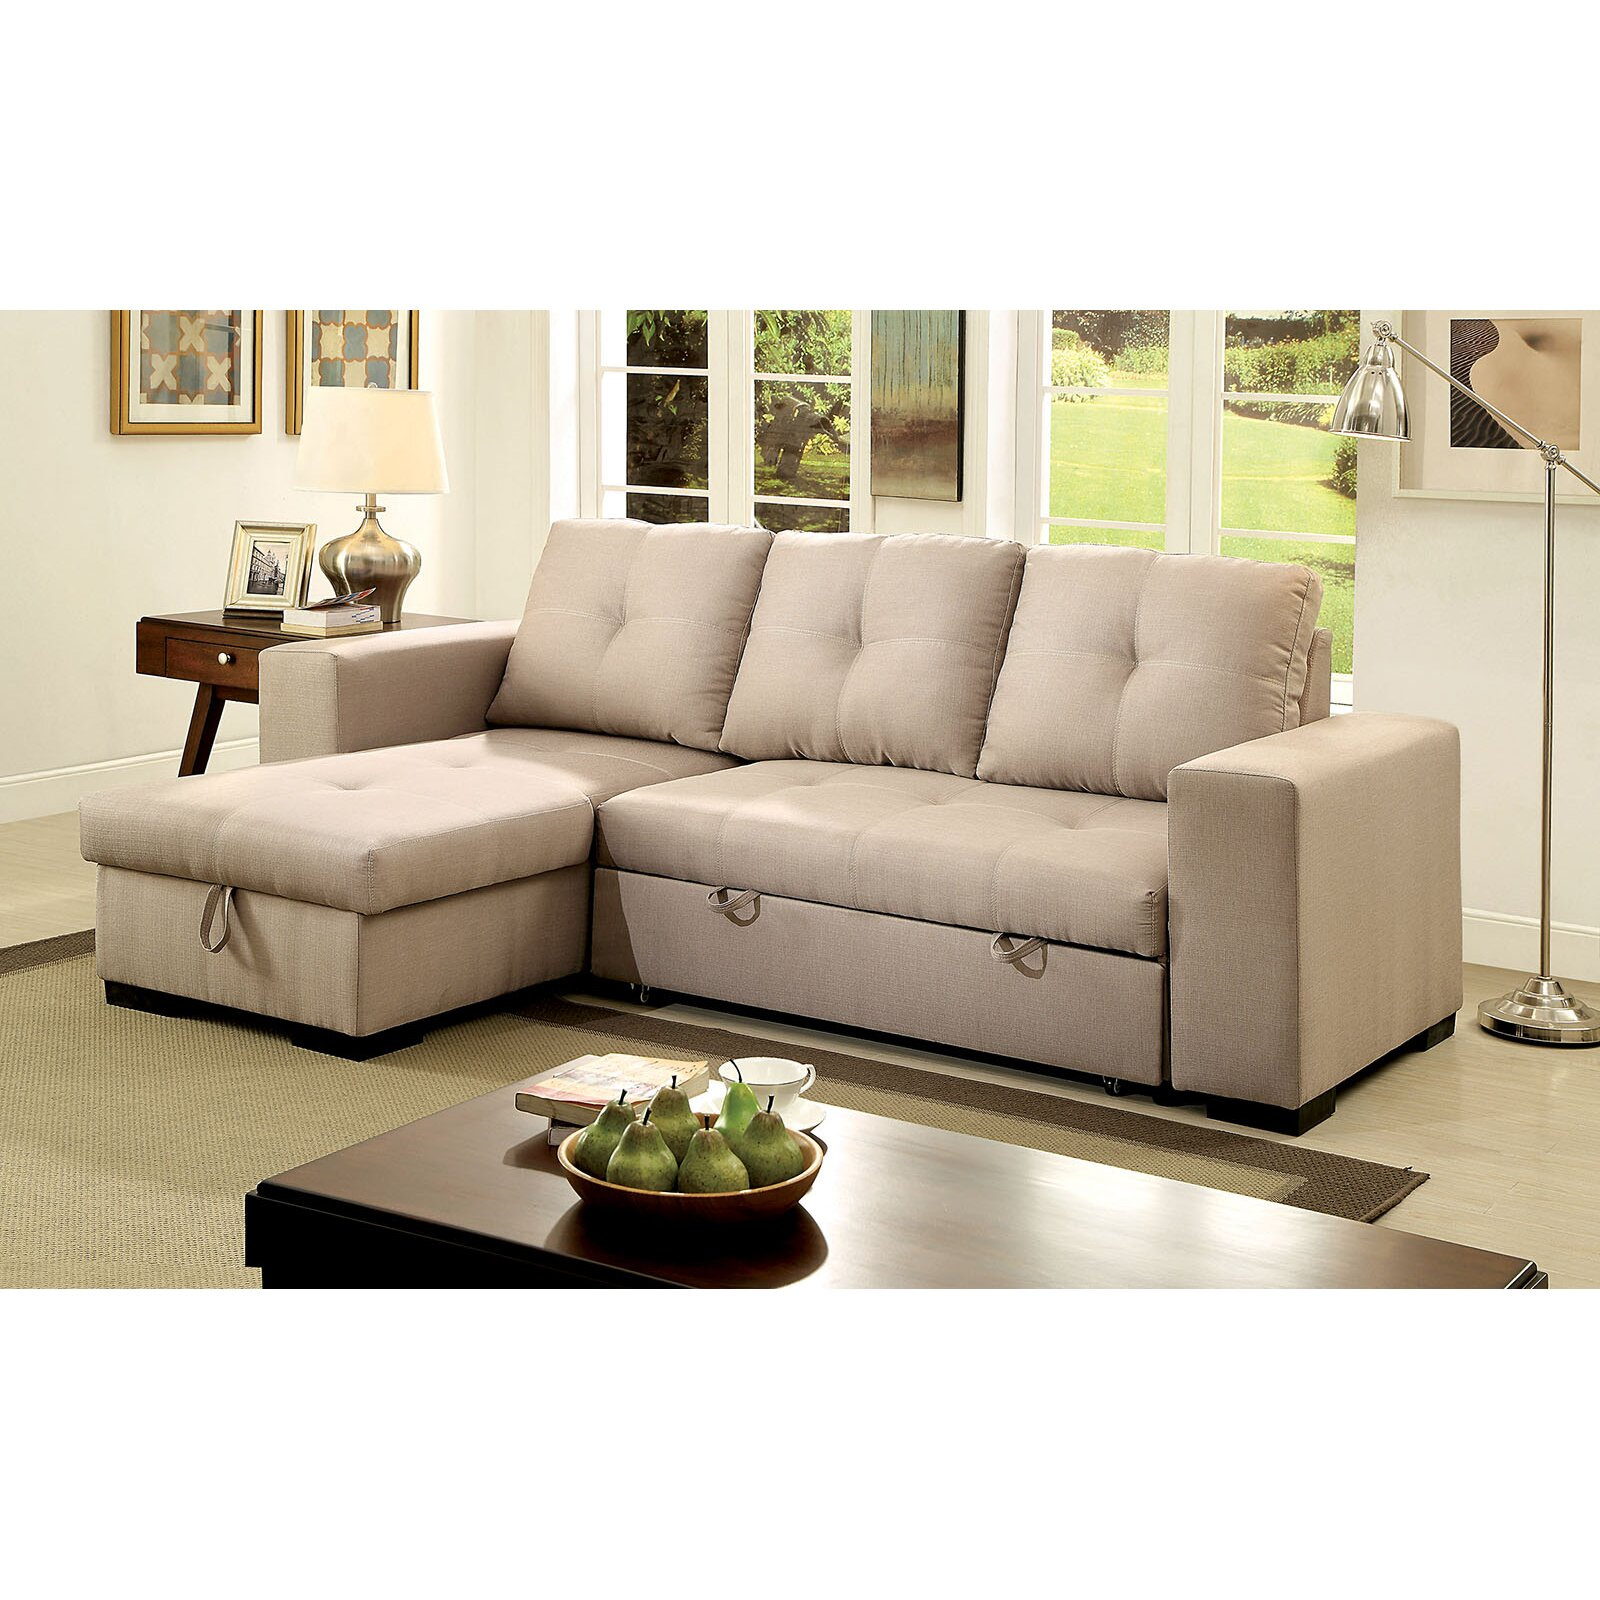 Sofa Sleeper Chaise: A&J Homes Studio Reversible Chaise Sleeper Sectional